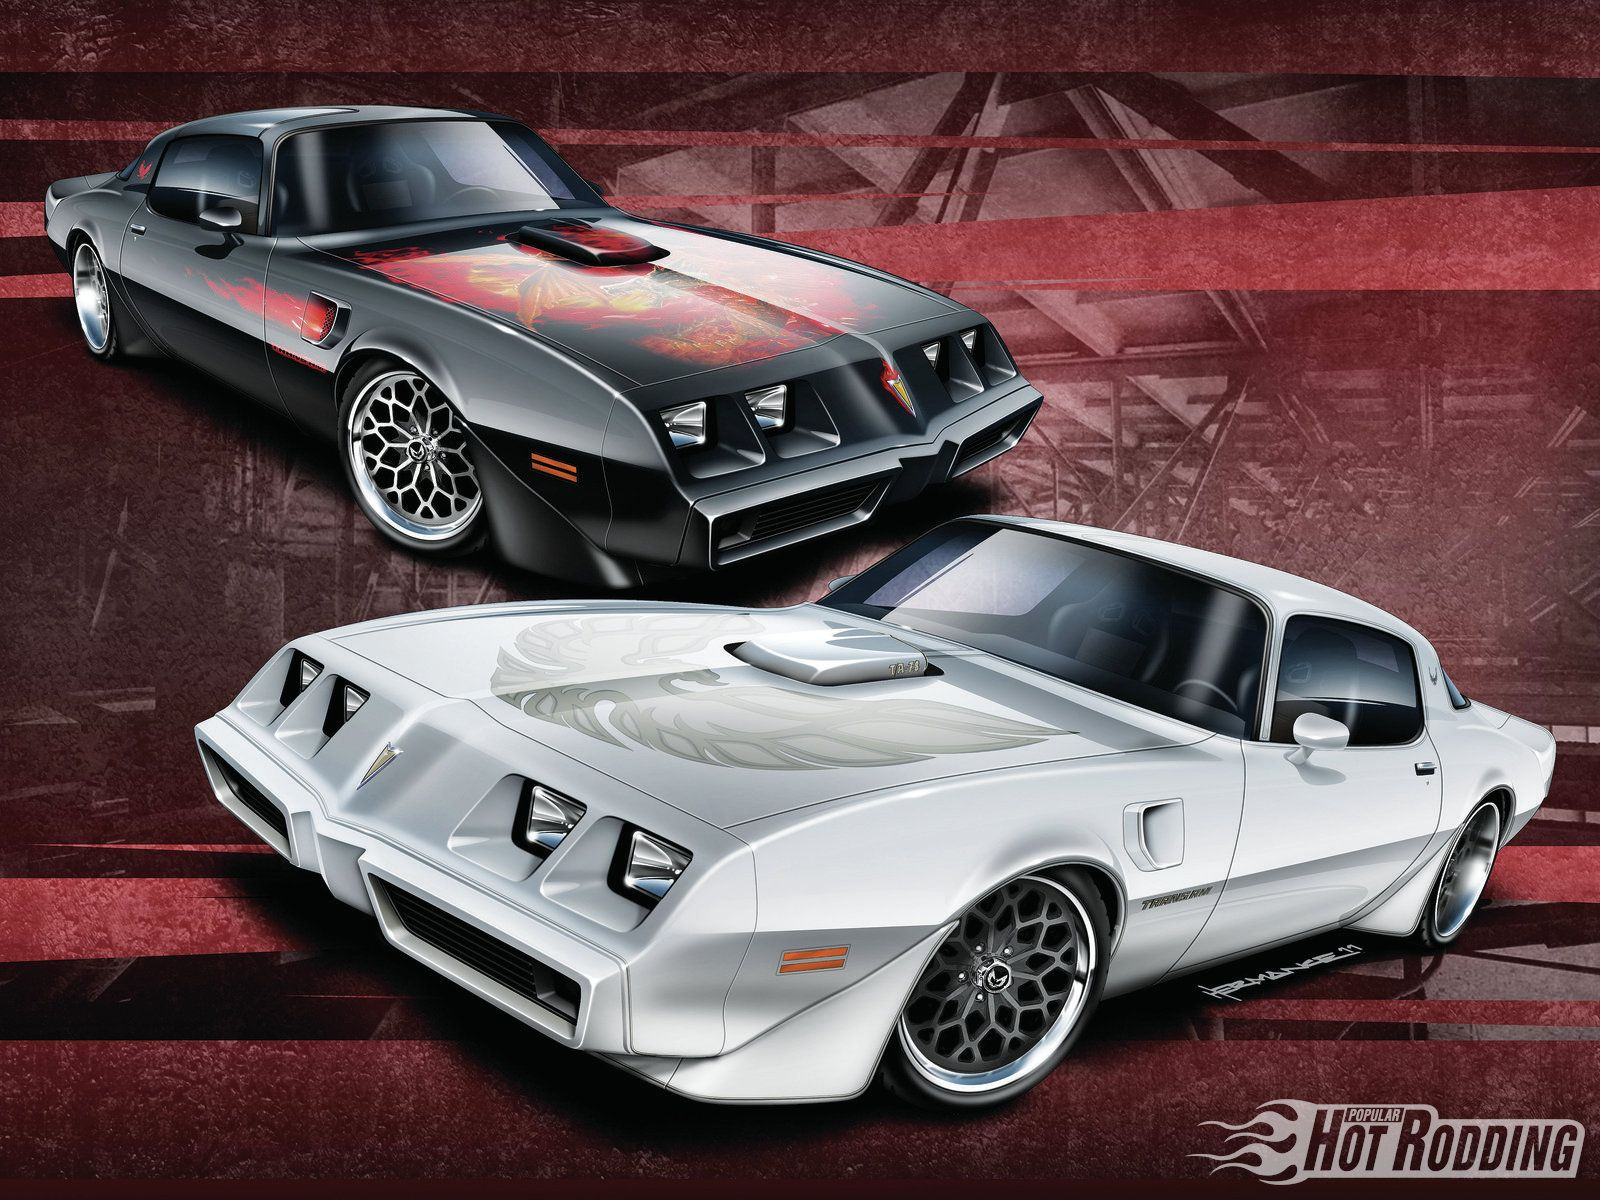 Two 1980 pontiac firebird trans ams